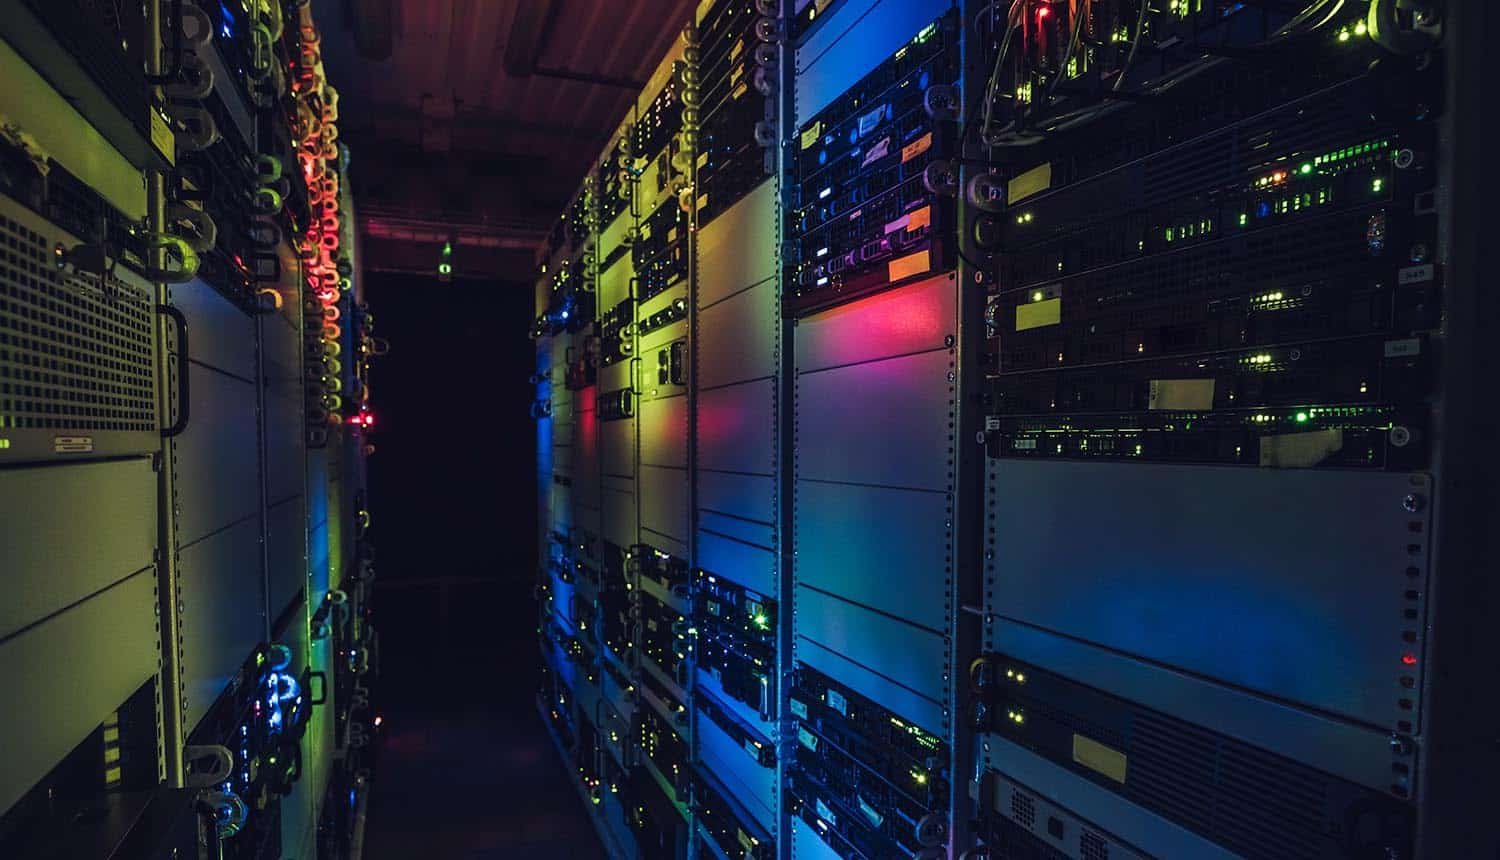 View of servers in the data center showing need for machine identity protection to counter insider threats